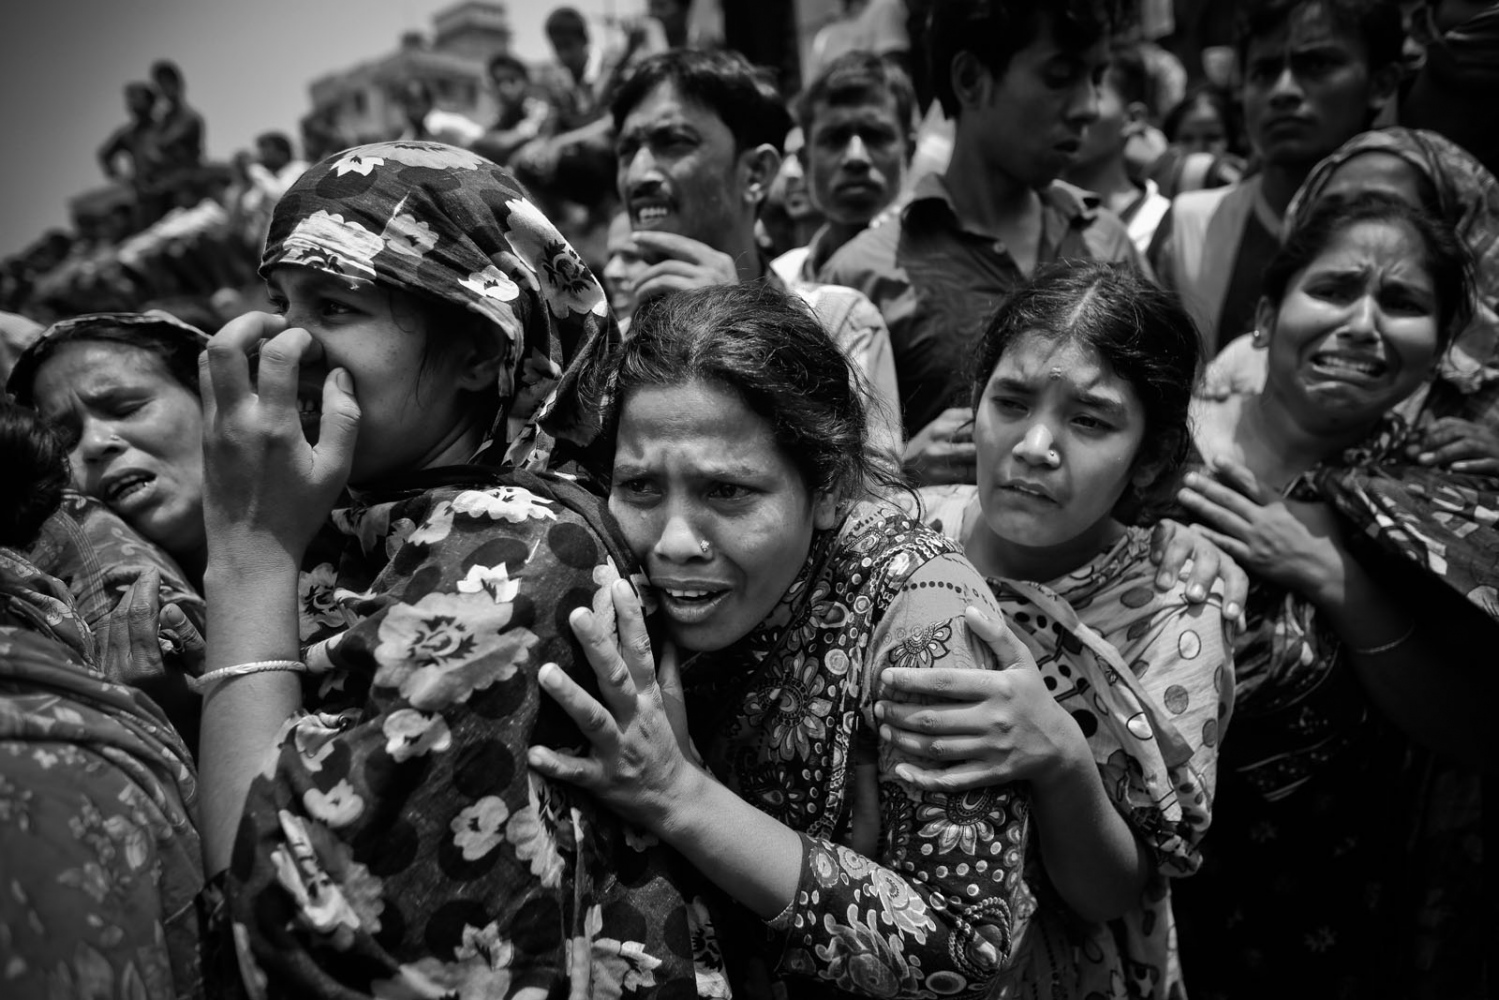 People mourn in front of the remains of their relatives, who died inside the rubble of the collapsed Rana Plaza building, in Savar, 30 km (19 miles) outside Dhaka.